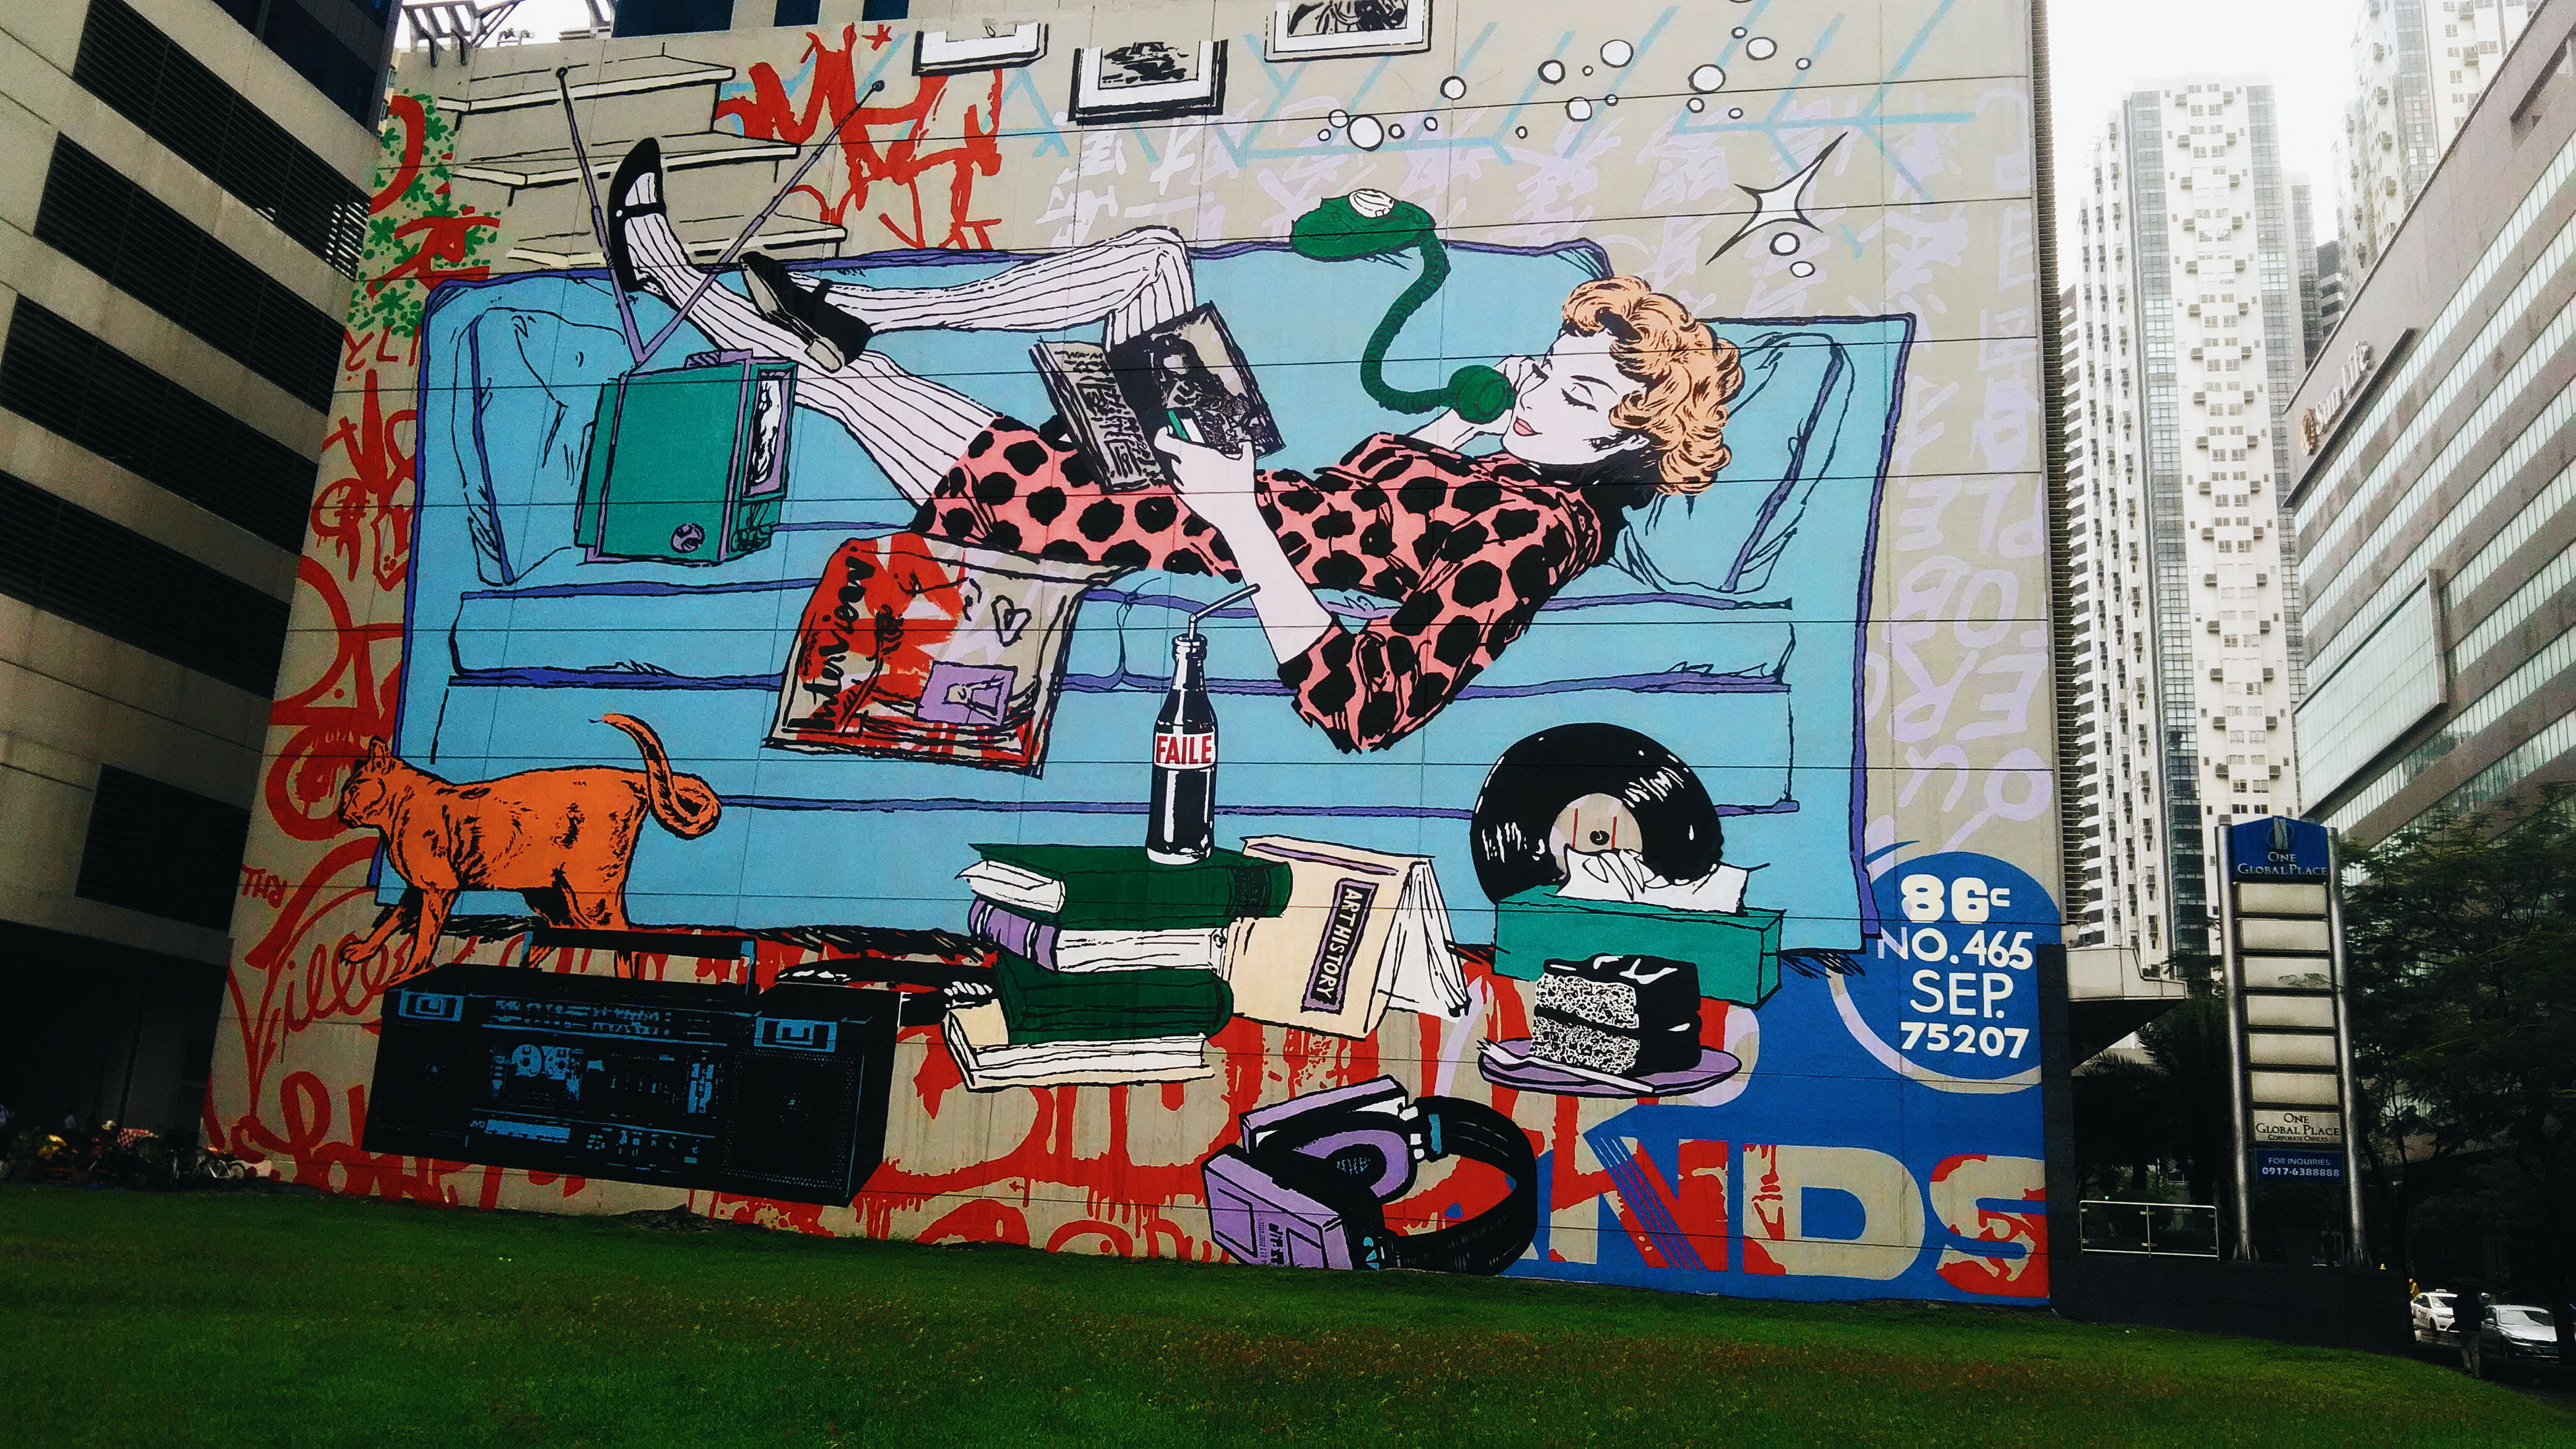 art, architecture, built structure, creativity, graffiti, multi colored, green color, city, building, day, street art, outdoors, grass, no people, sky, modern